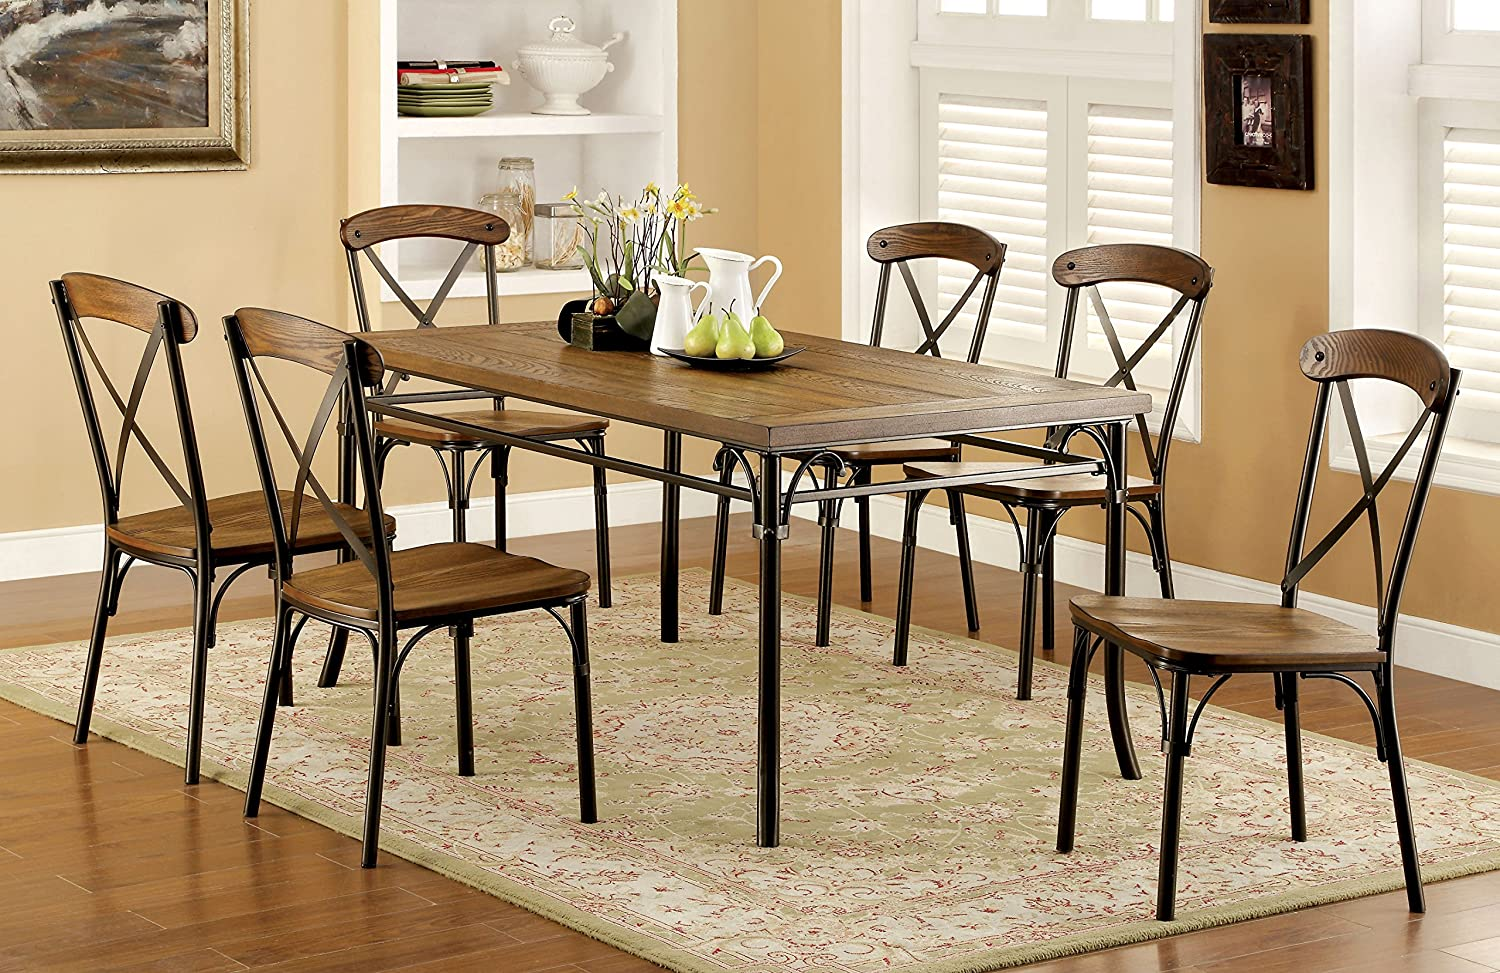 Amazon.com - Furniture of America Rizal Industrial Style Dining ...